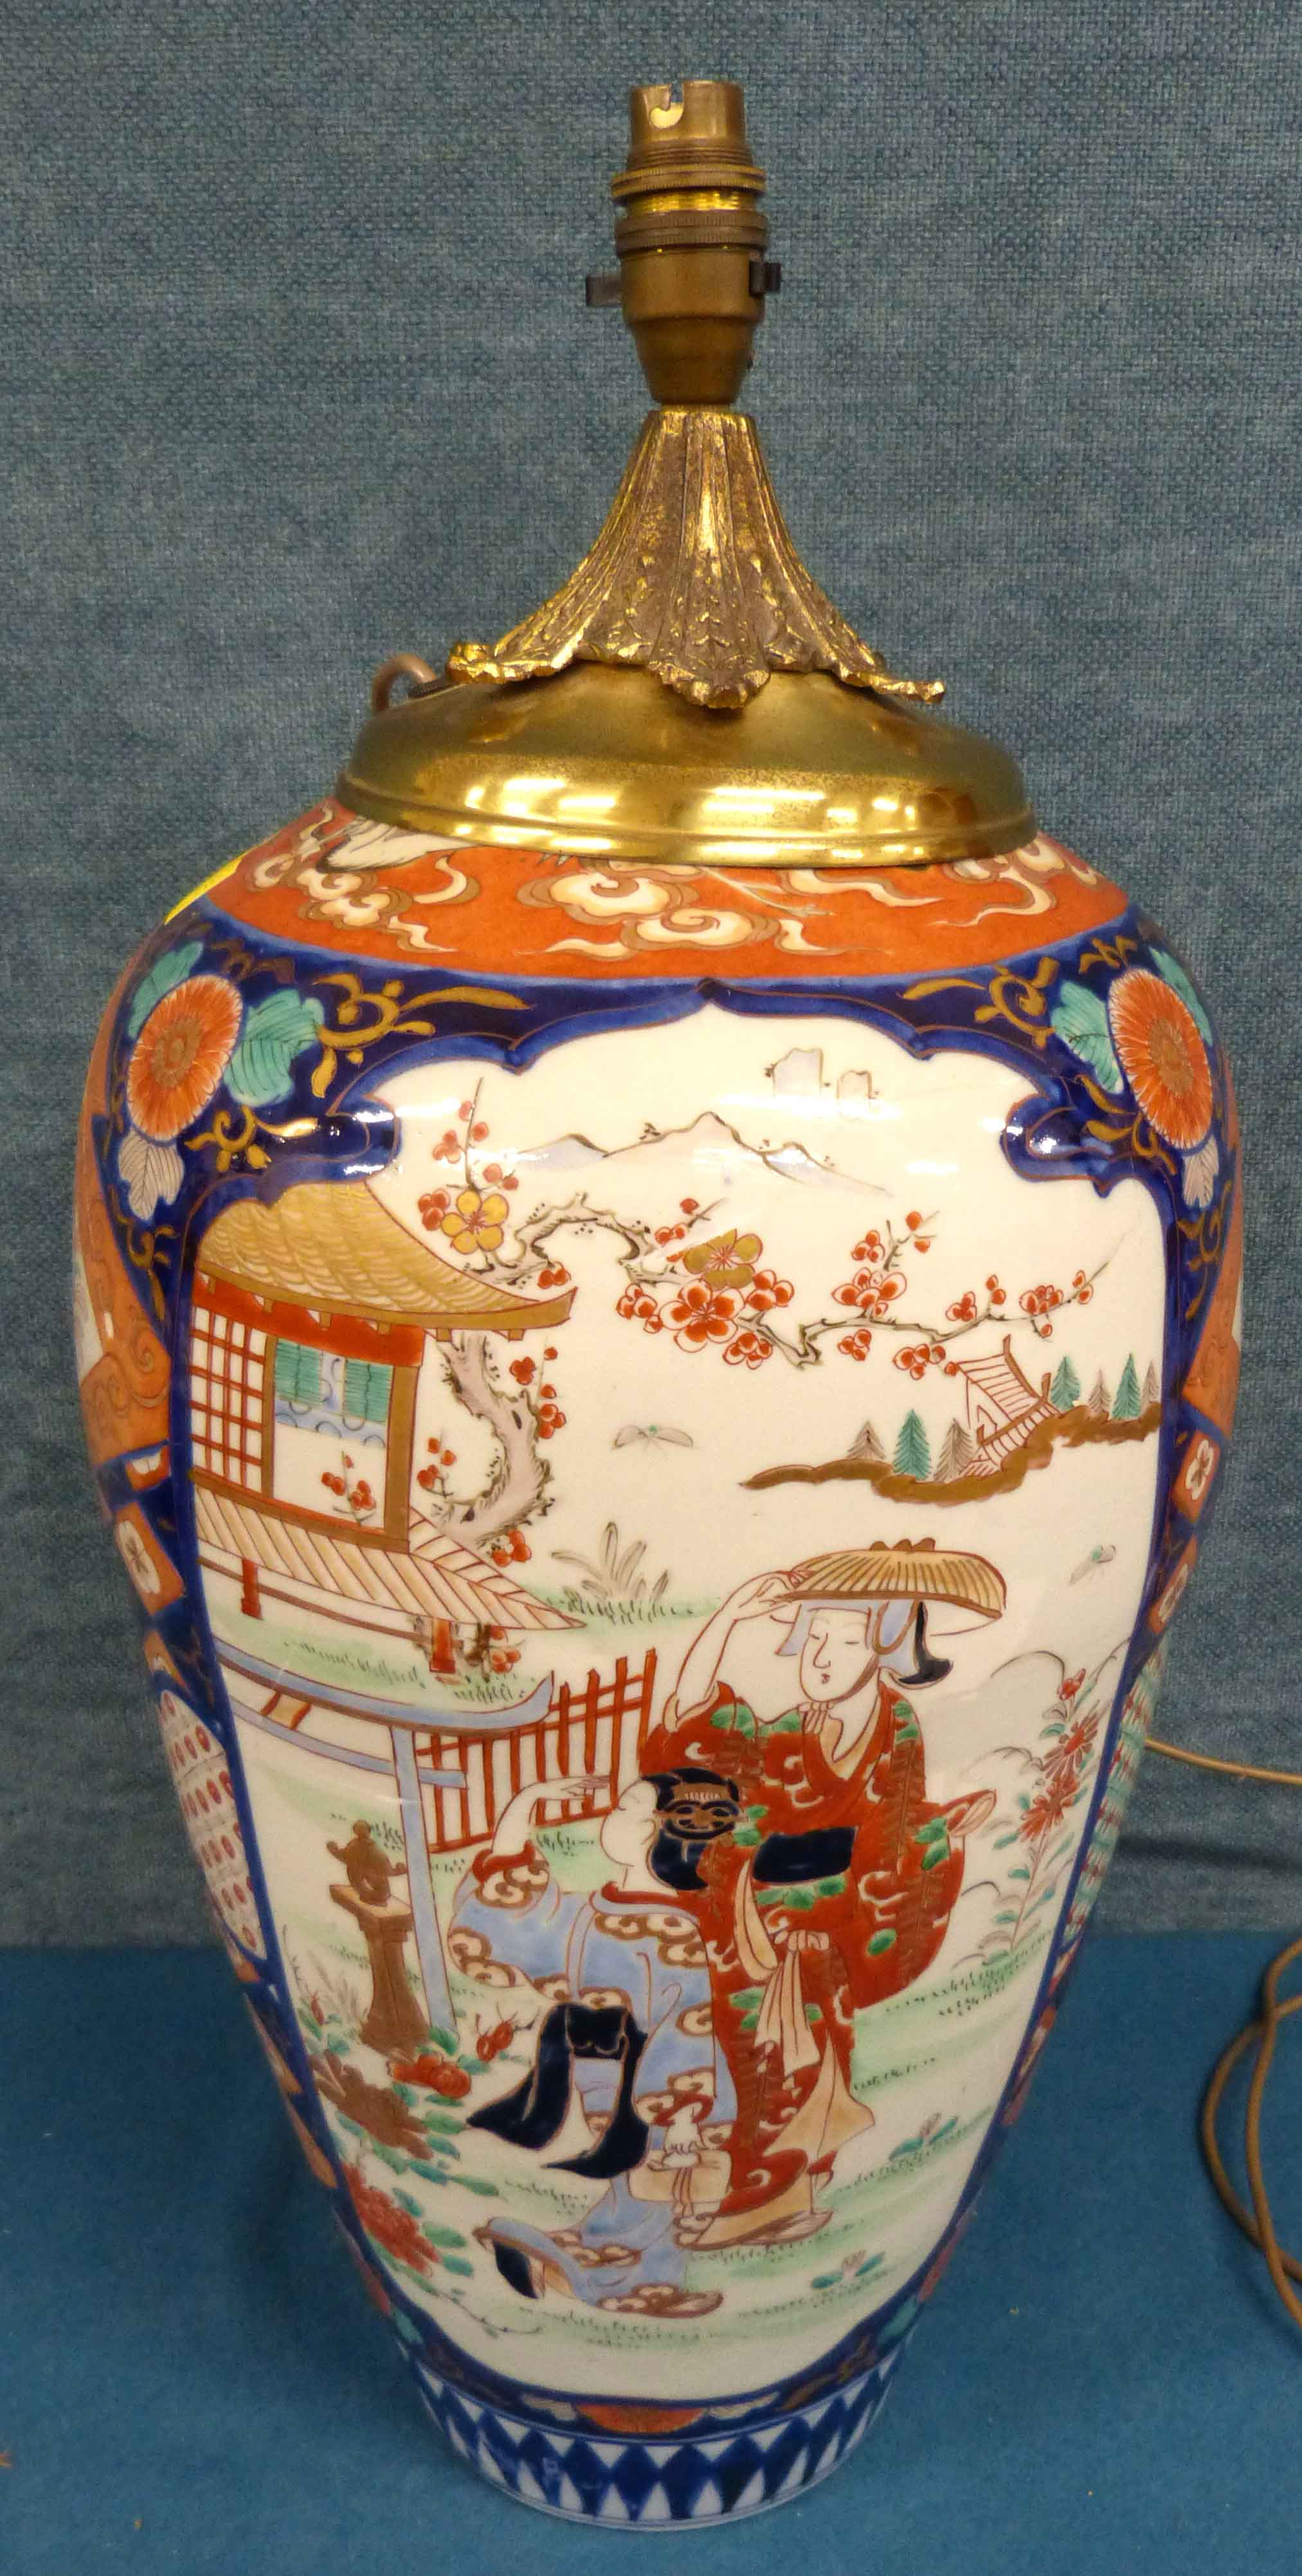 Lot 118 - Large Japanese Imari Vase We are unable to do condition reports on our Interiors Sale